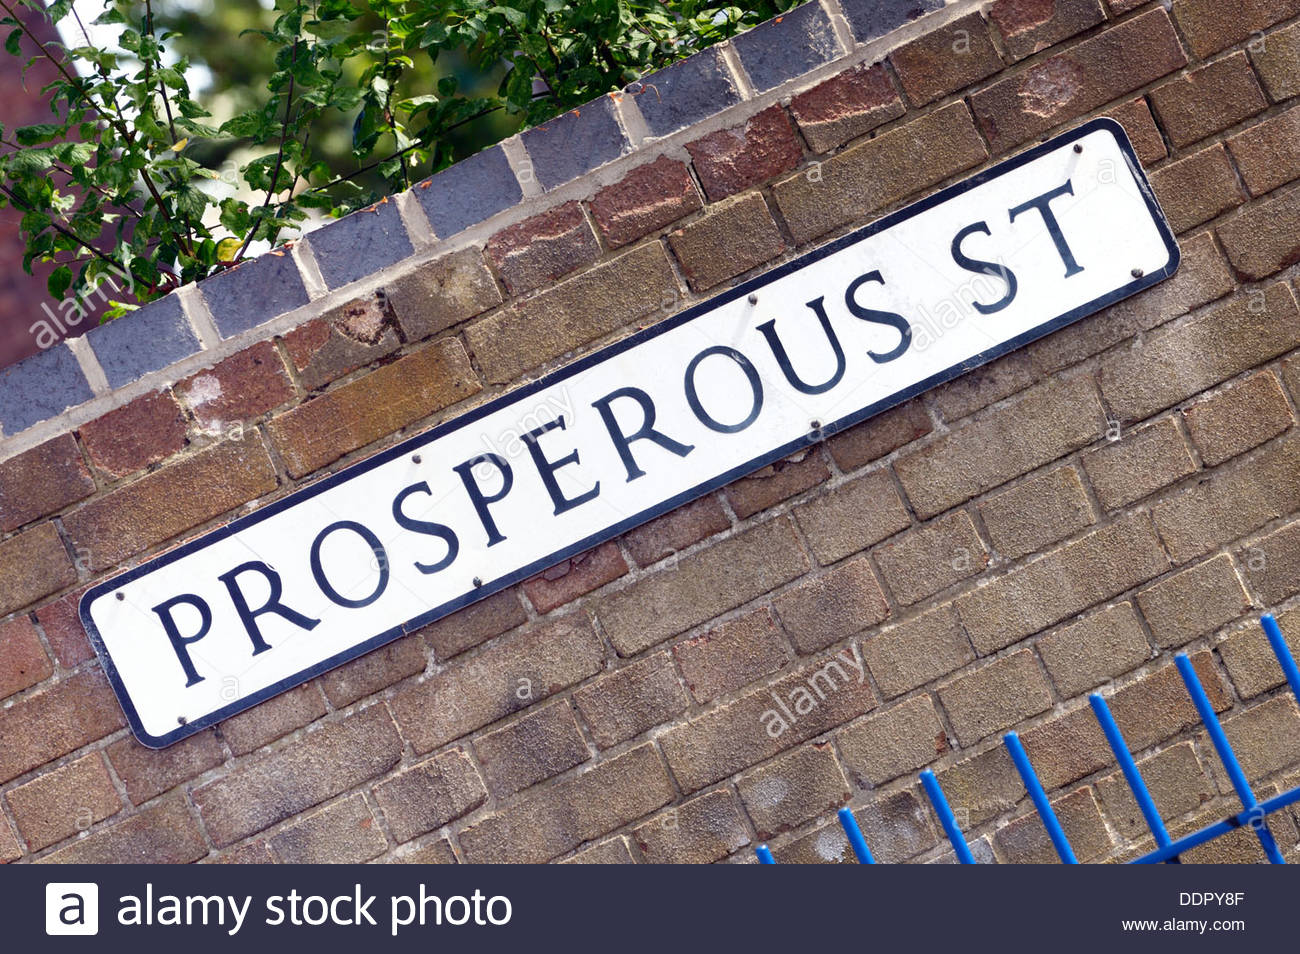 Close-up of the sign for Prosperous Street, Poole, Dorset, England - Stock Image